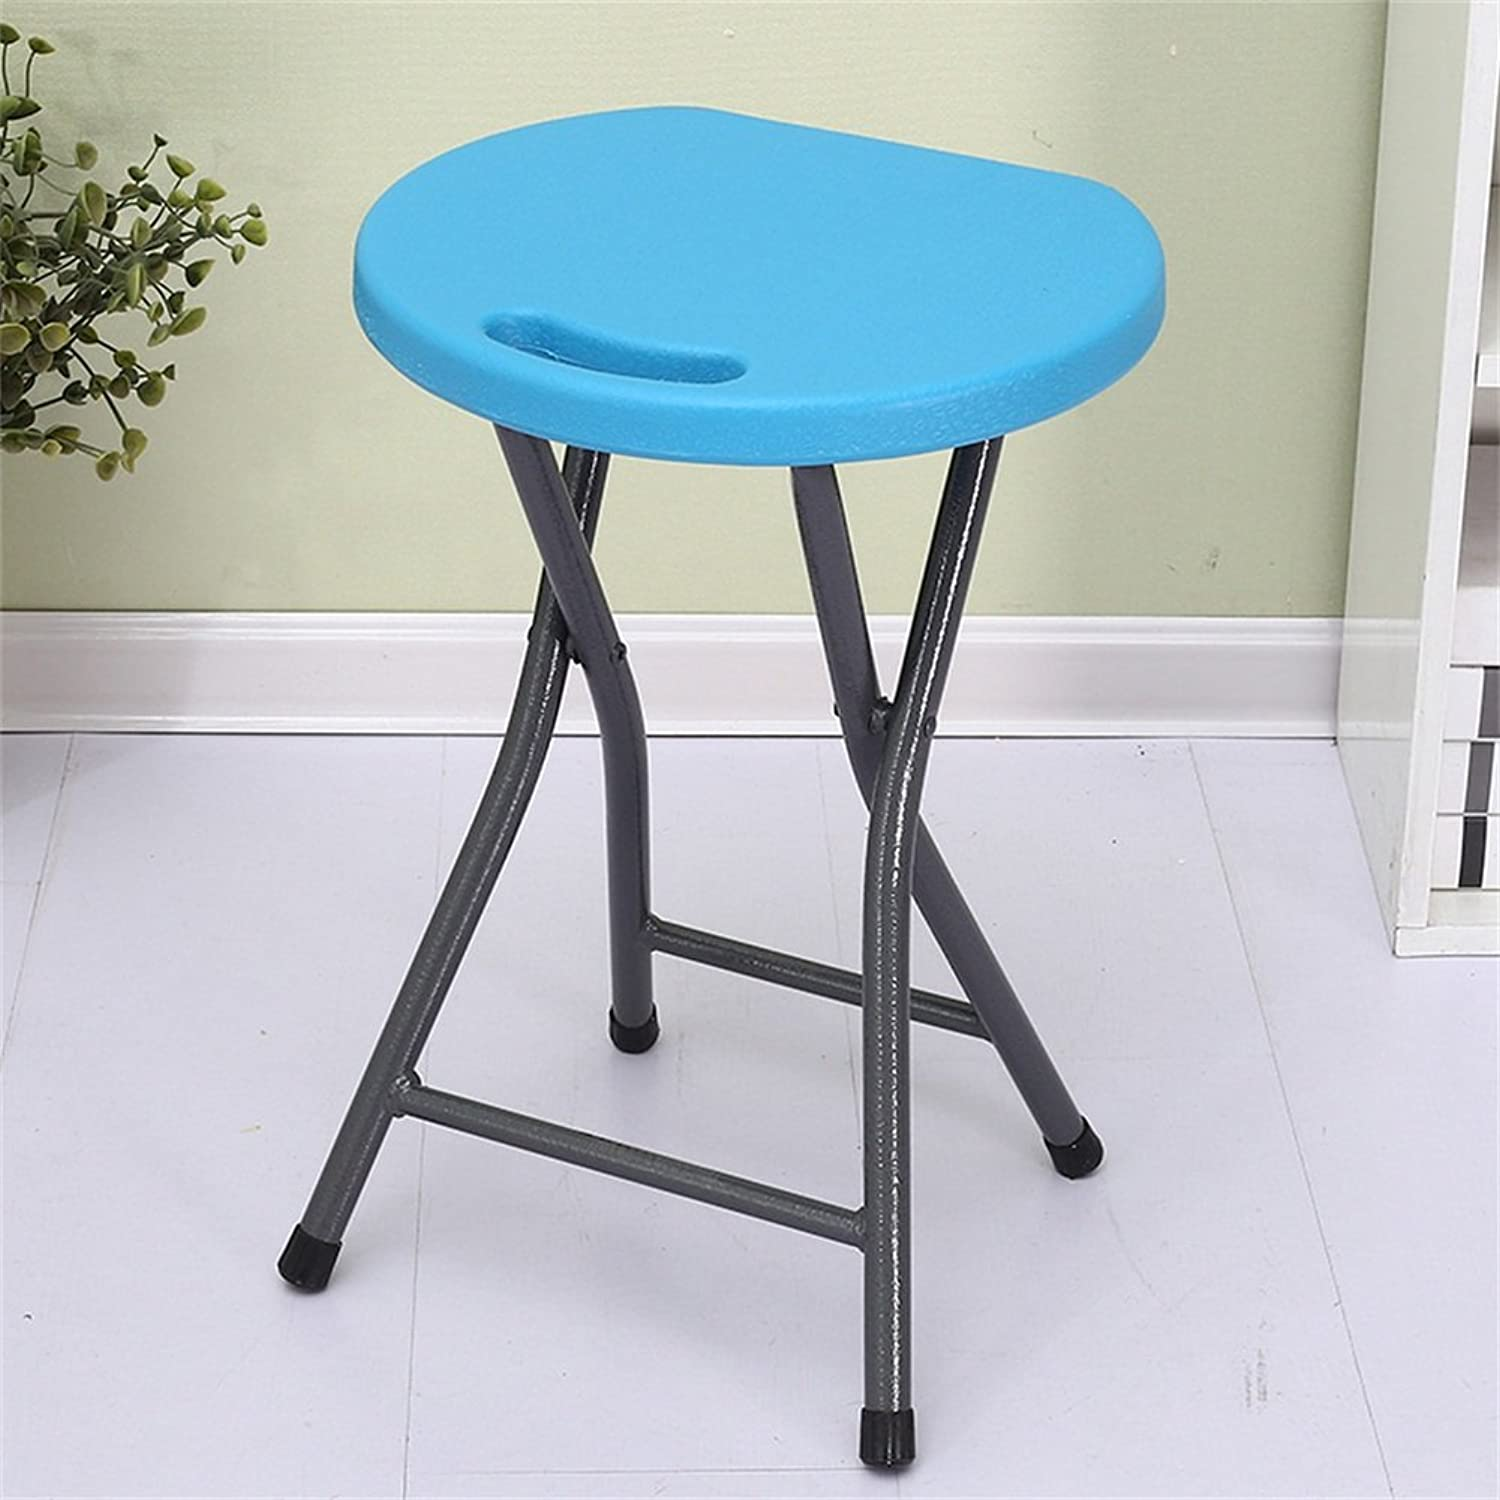 PVC Material Folding Stool 150 Kg Negative Weight Comfortable Portable Light bluee 45  33  33cm